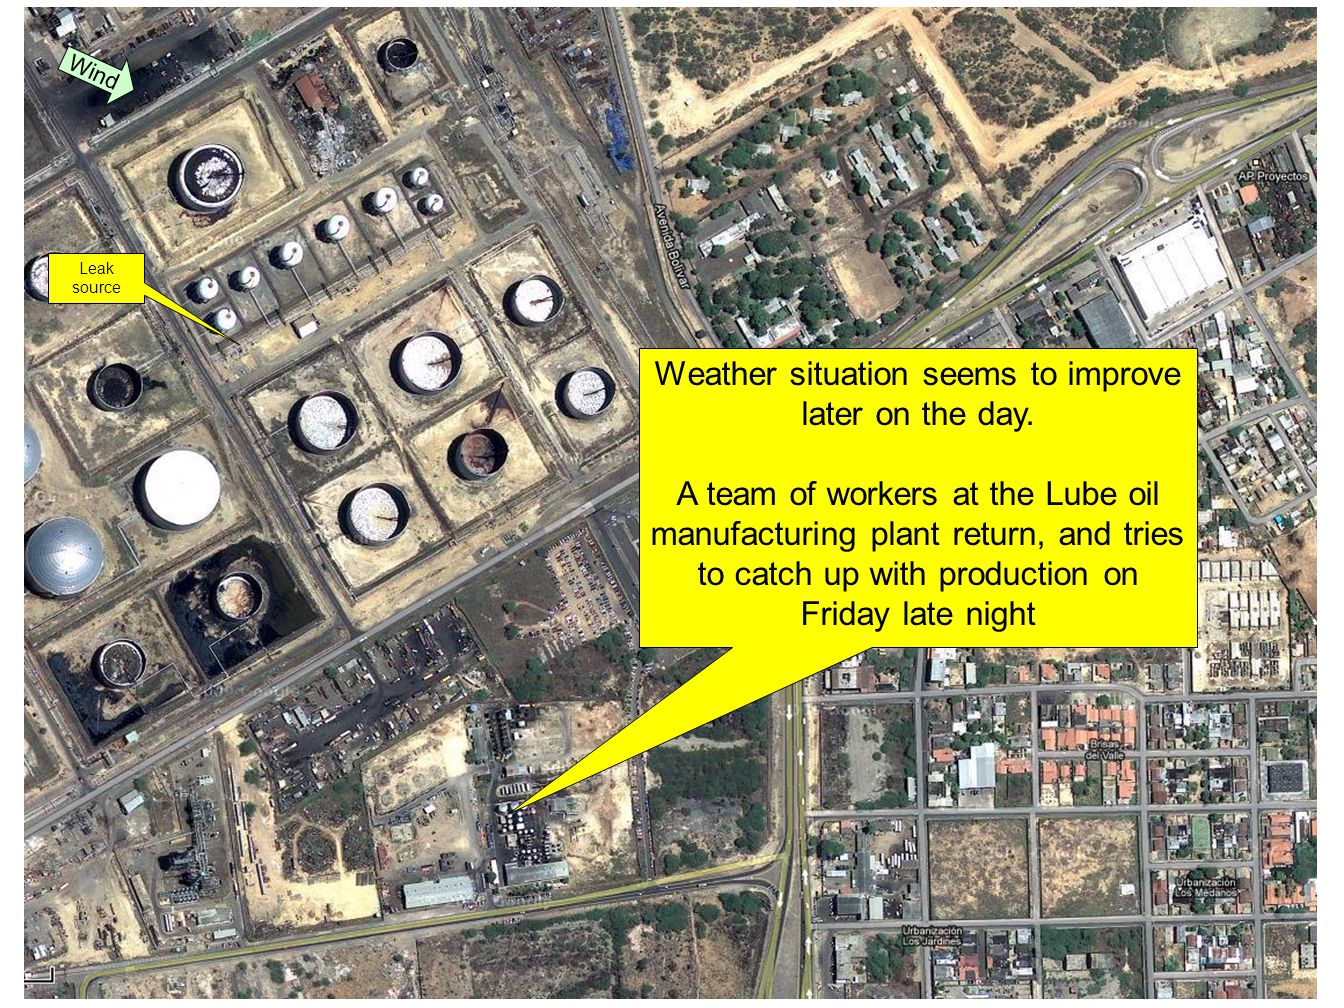 Weather situation seems to improve later on the day. A team of workers at the Lube oil manufacturing plant return, and tries to catch up with producti